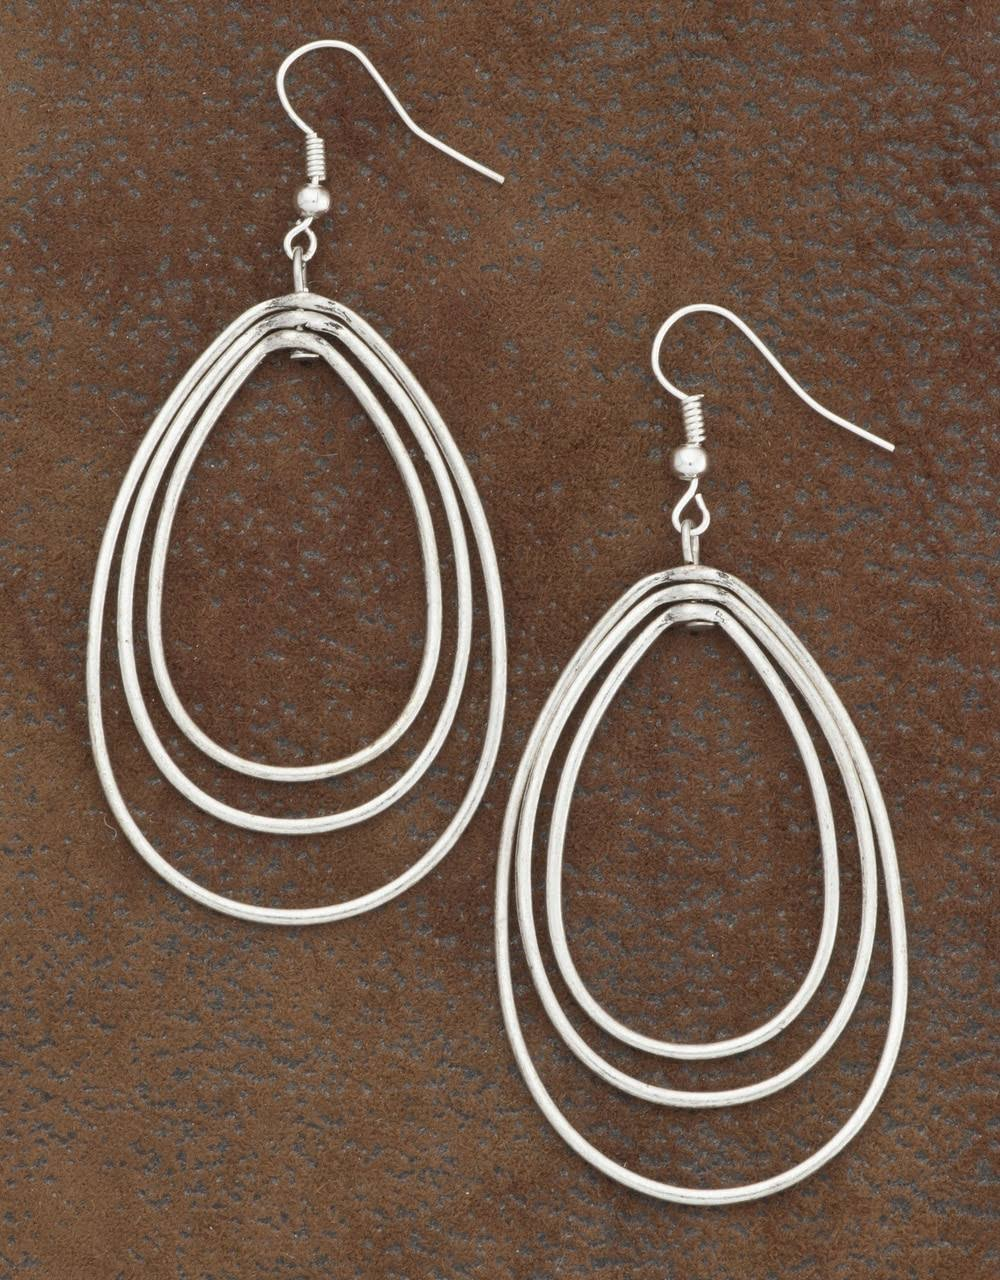 West Co Earrings E556